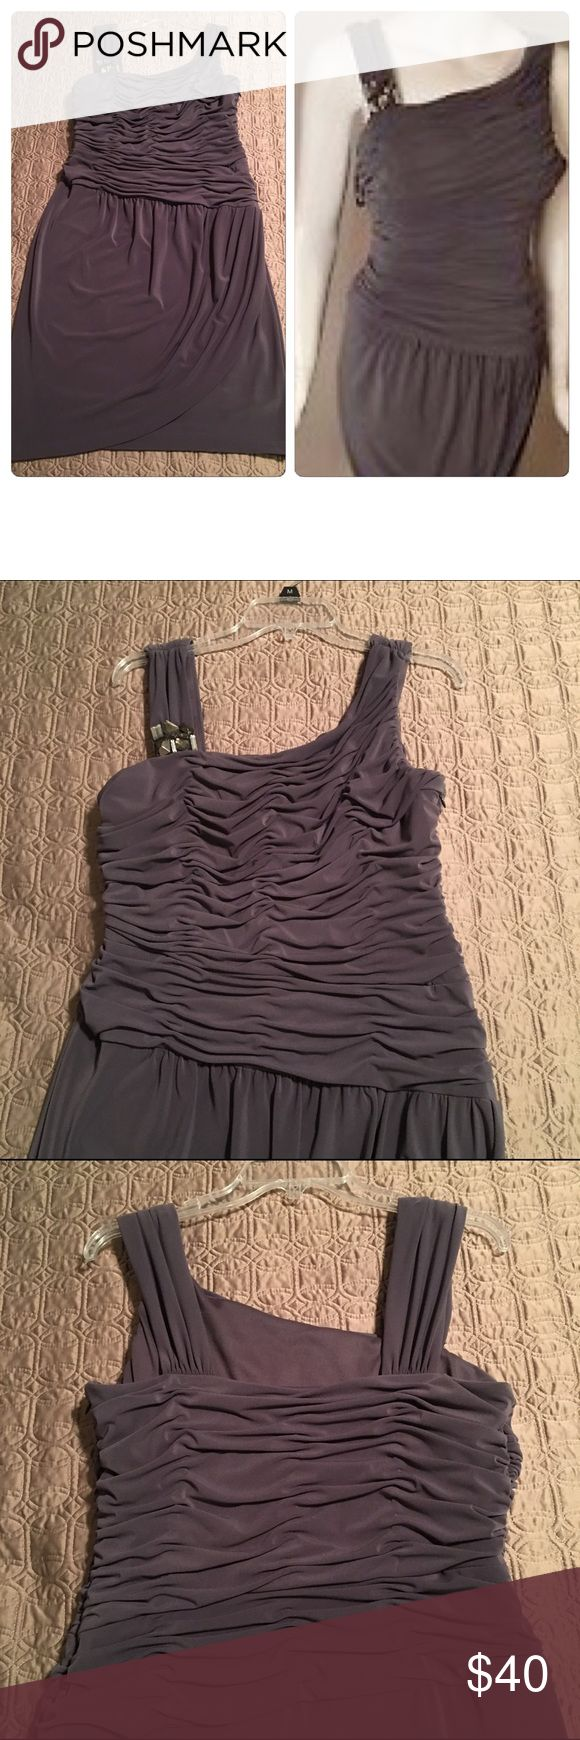 """Jones New York Gray Cocktail Dress Beautiful cocktail dress by Jones New York in charcoal gray with asymmetrical neckline and jewels on one strap. This dress hugs your curves in all the right places while helping minimize your waist and stomach area with the ruched top and draped skirt. Dress is comfortable as it has some stretch to it. Hidden side zipper.  I'm 5'4"""" and this hit at the top of my knee. Only worn once and has since been dry cleaned and hanging in the closet since. ❌ No trades…"""